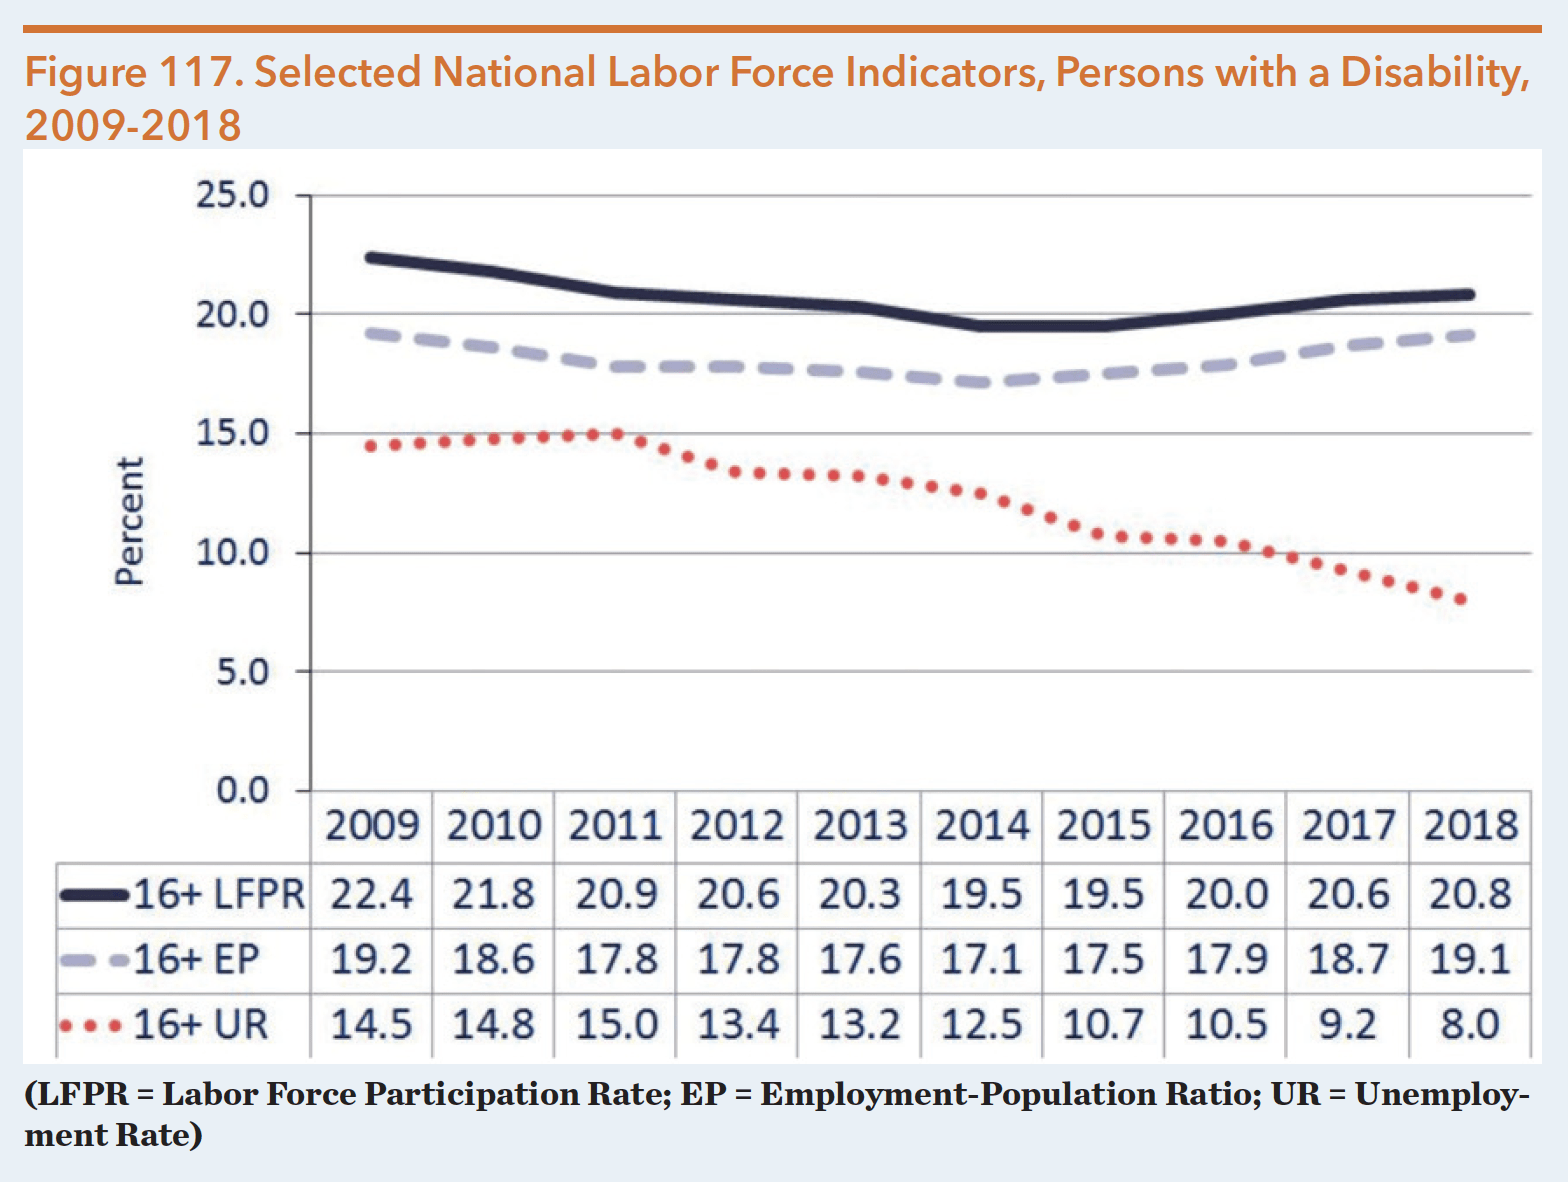 Figure 117. Selected National Labor Force Indicators, Persons with a Disability, 2009-2018